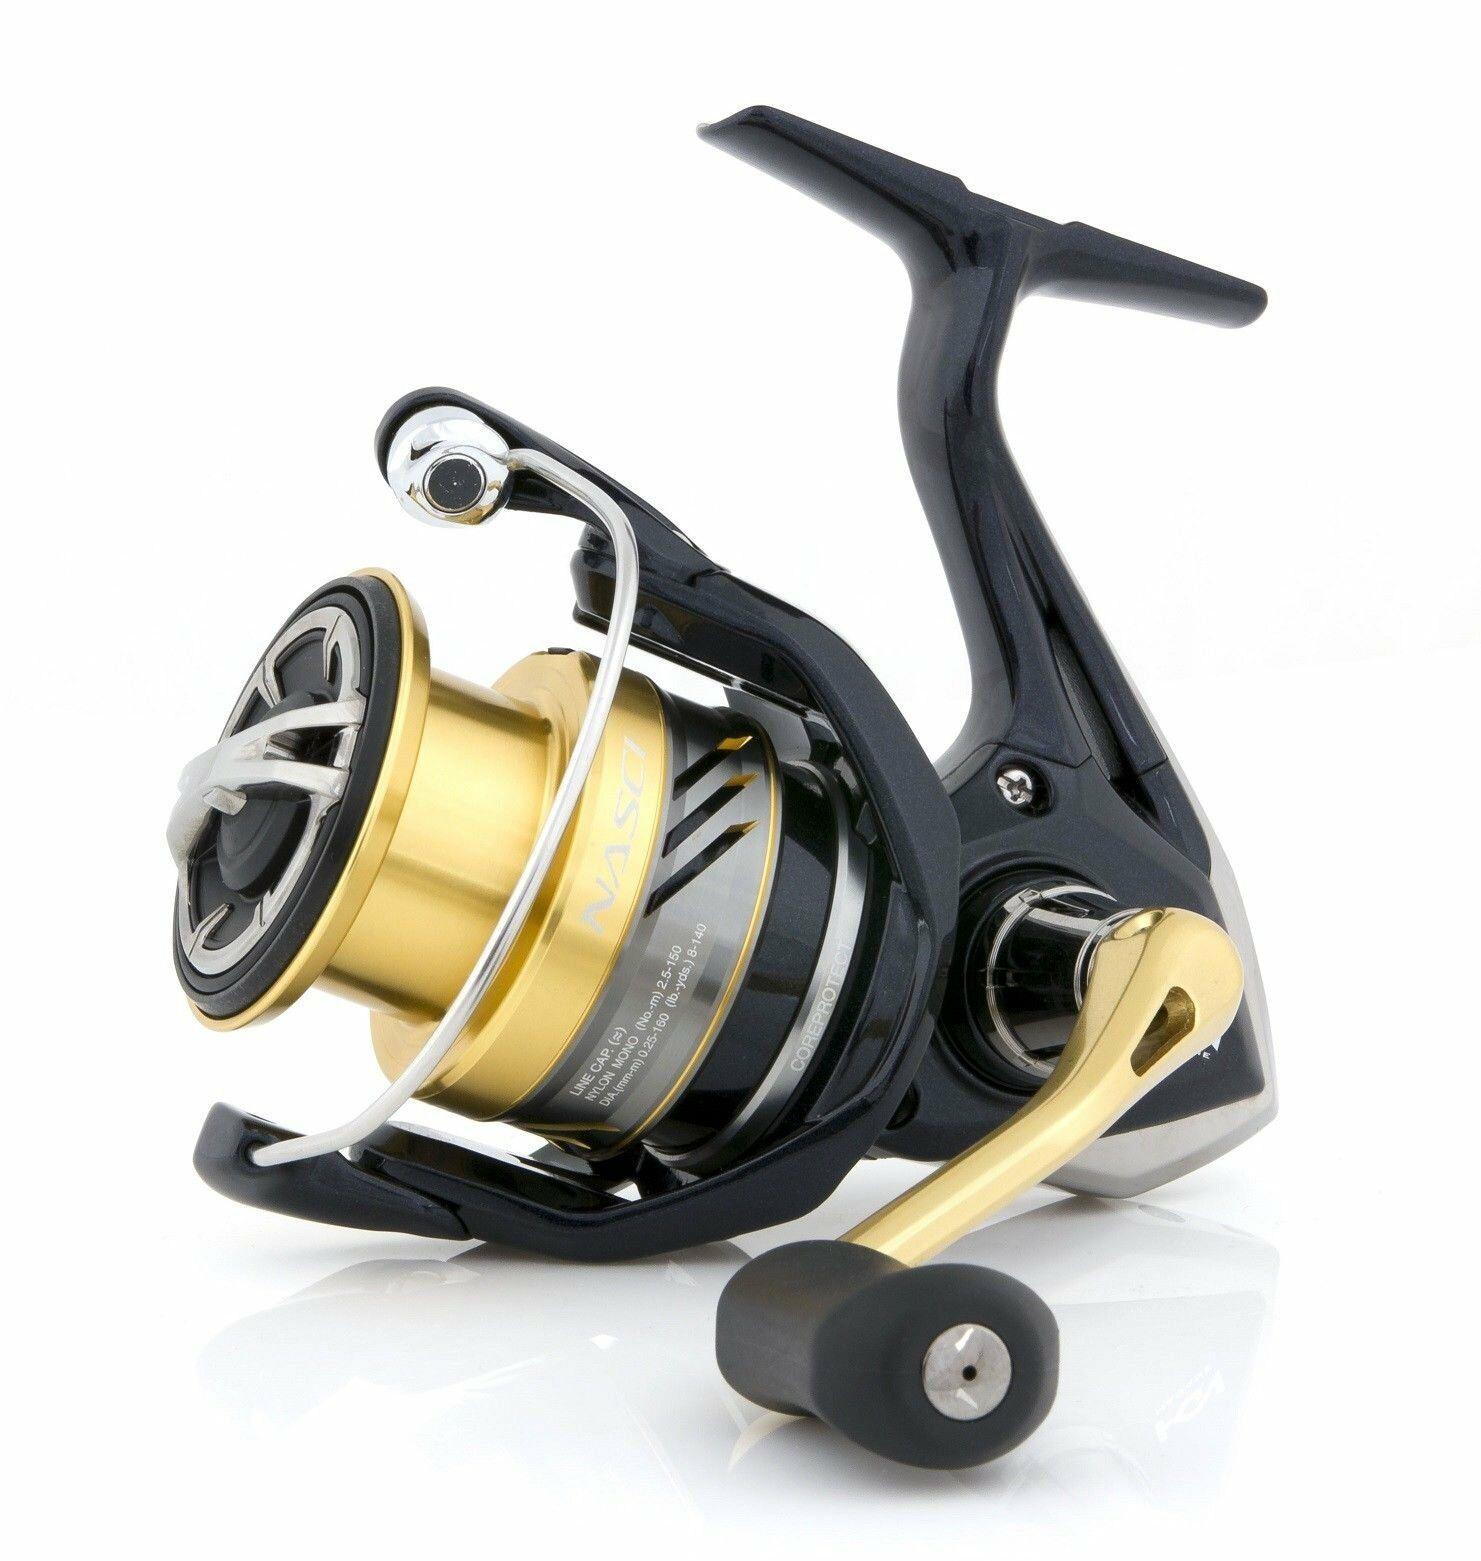 Shimano Nasci 2500 FB, Spinning Rolle Frontbremse, NAS2500FB